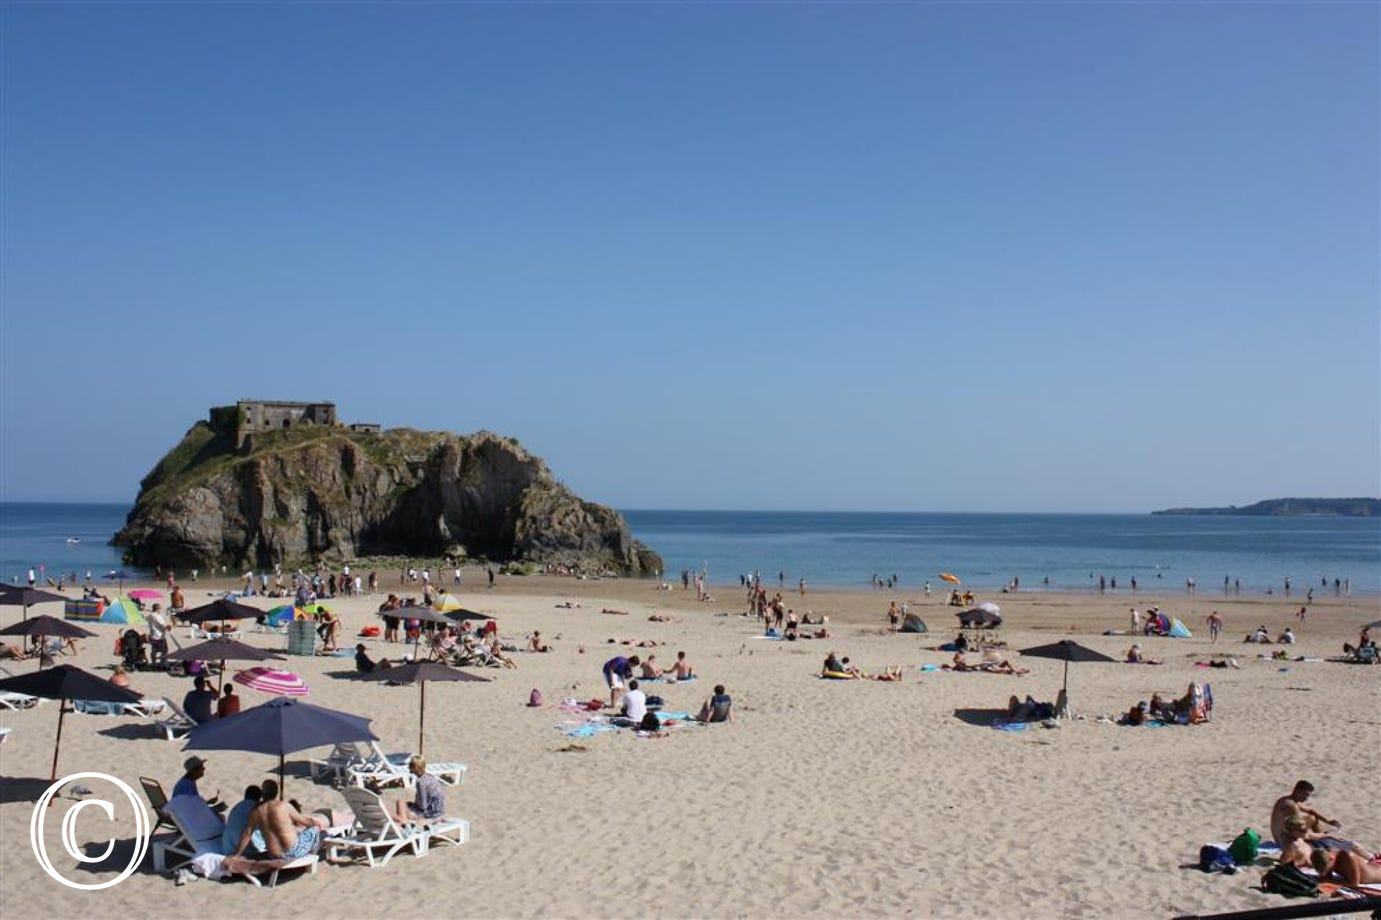 Tenby is just 3 miles away, with great beaches, cobbled streets and plenty to do